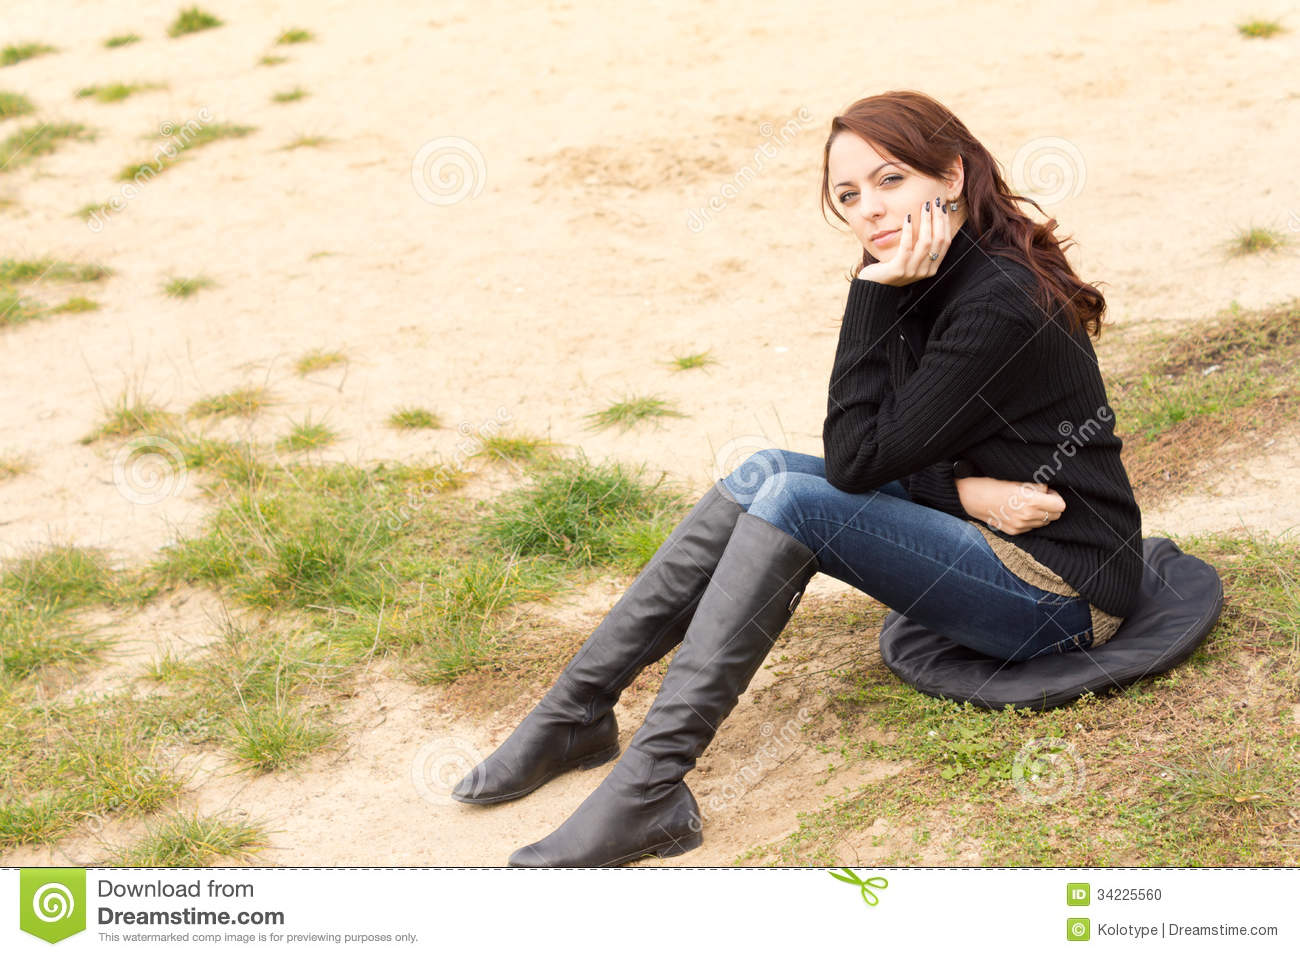 Girl sitting on the ground